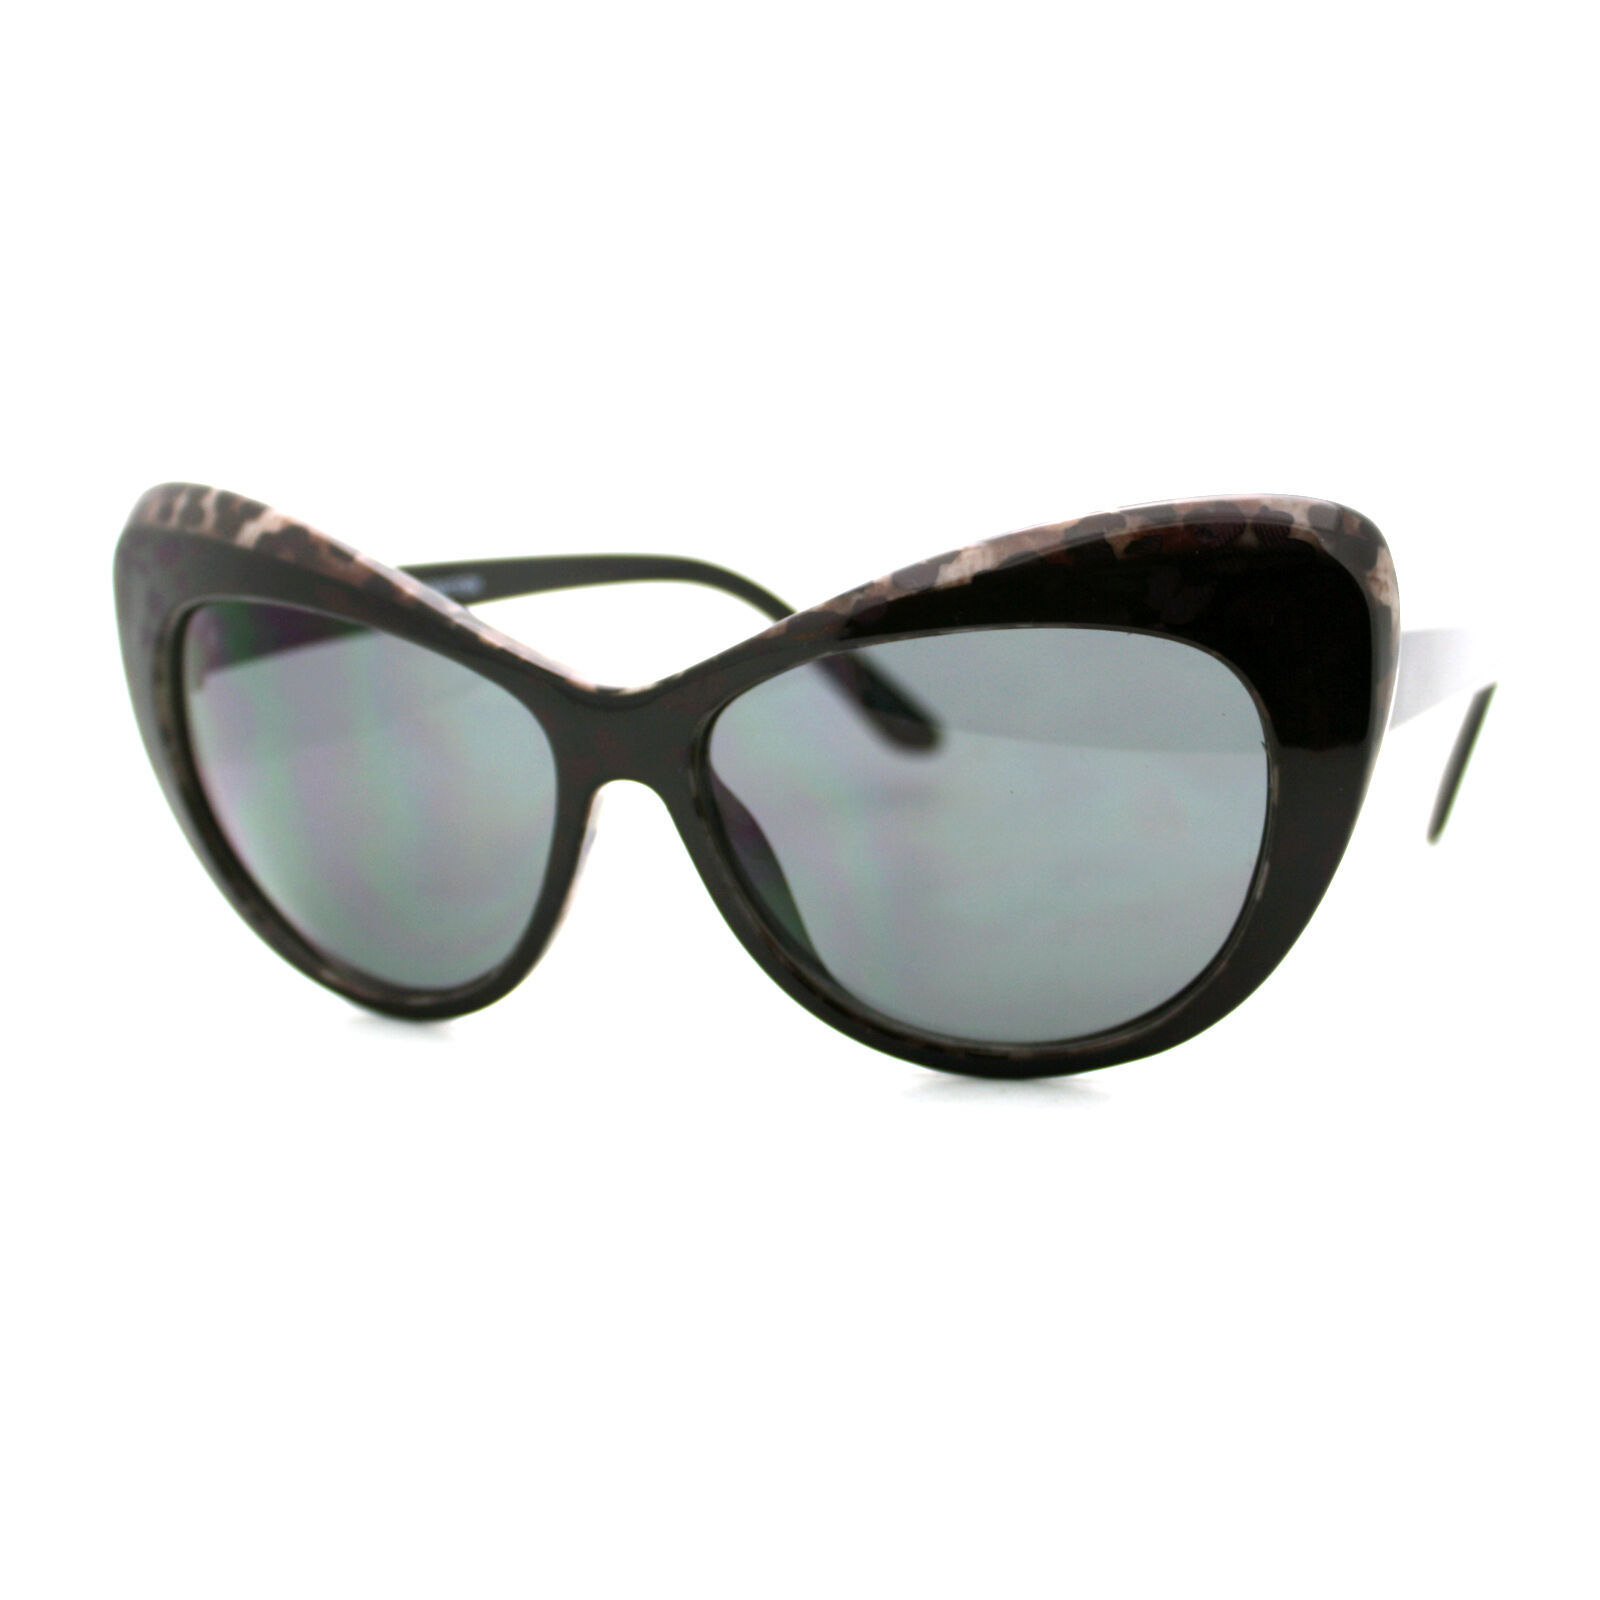 Oversized Wide Cateye Frame Sunglasses Women's Fashion Stylish Eyewear Black